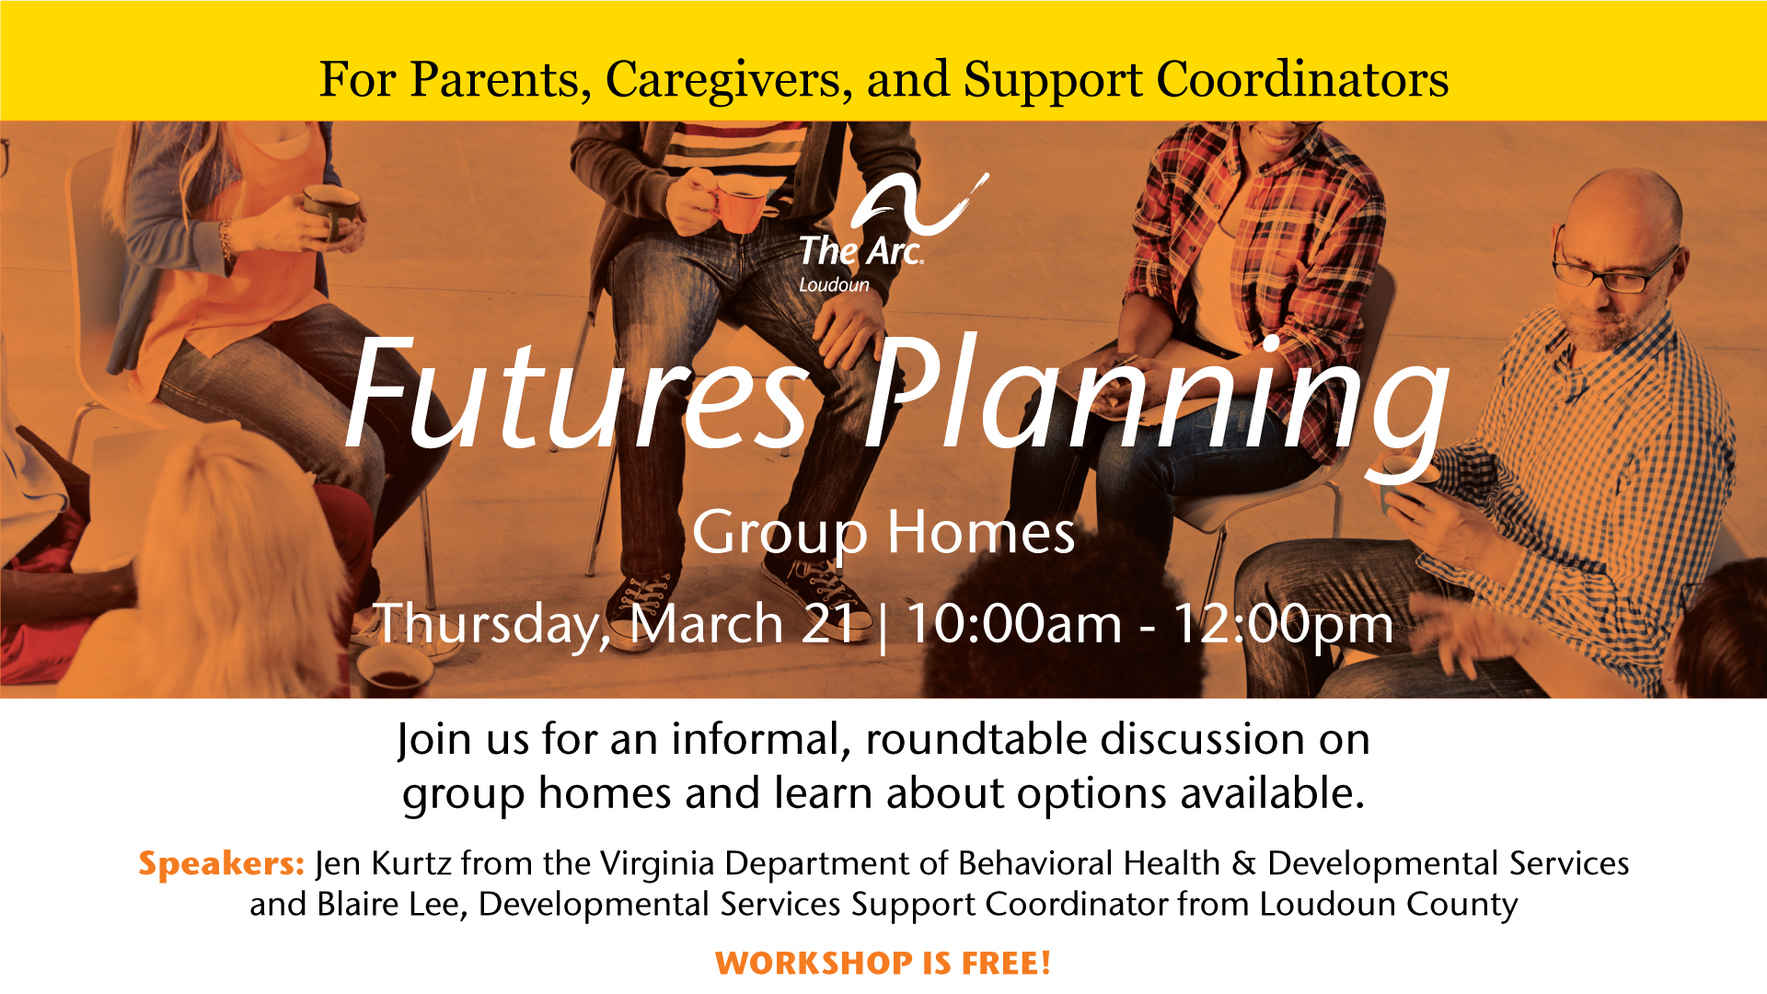 Futures Planning on March 21: Group Homes image